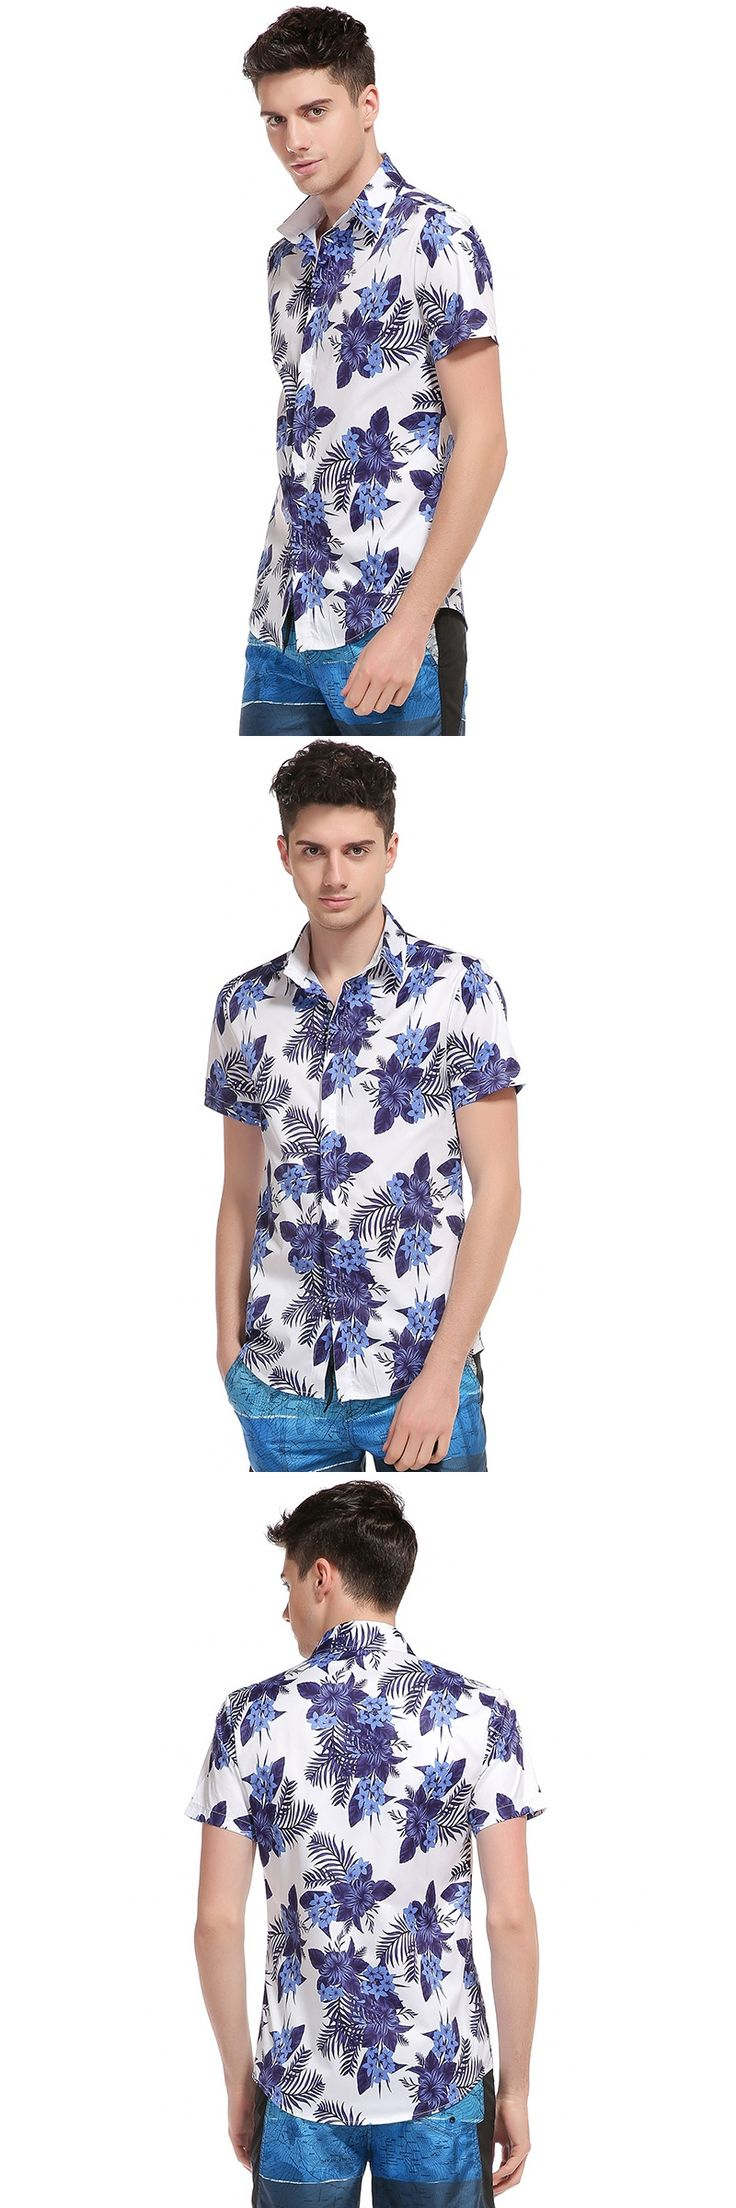 New fashion men's character blue and white porcelain printing casual Chinese style short sleeved shirt high quality